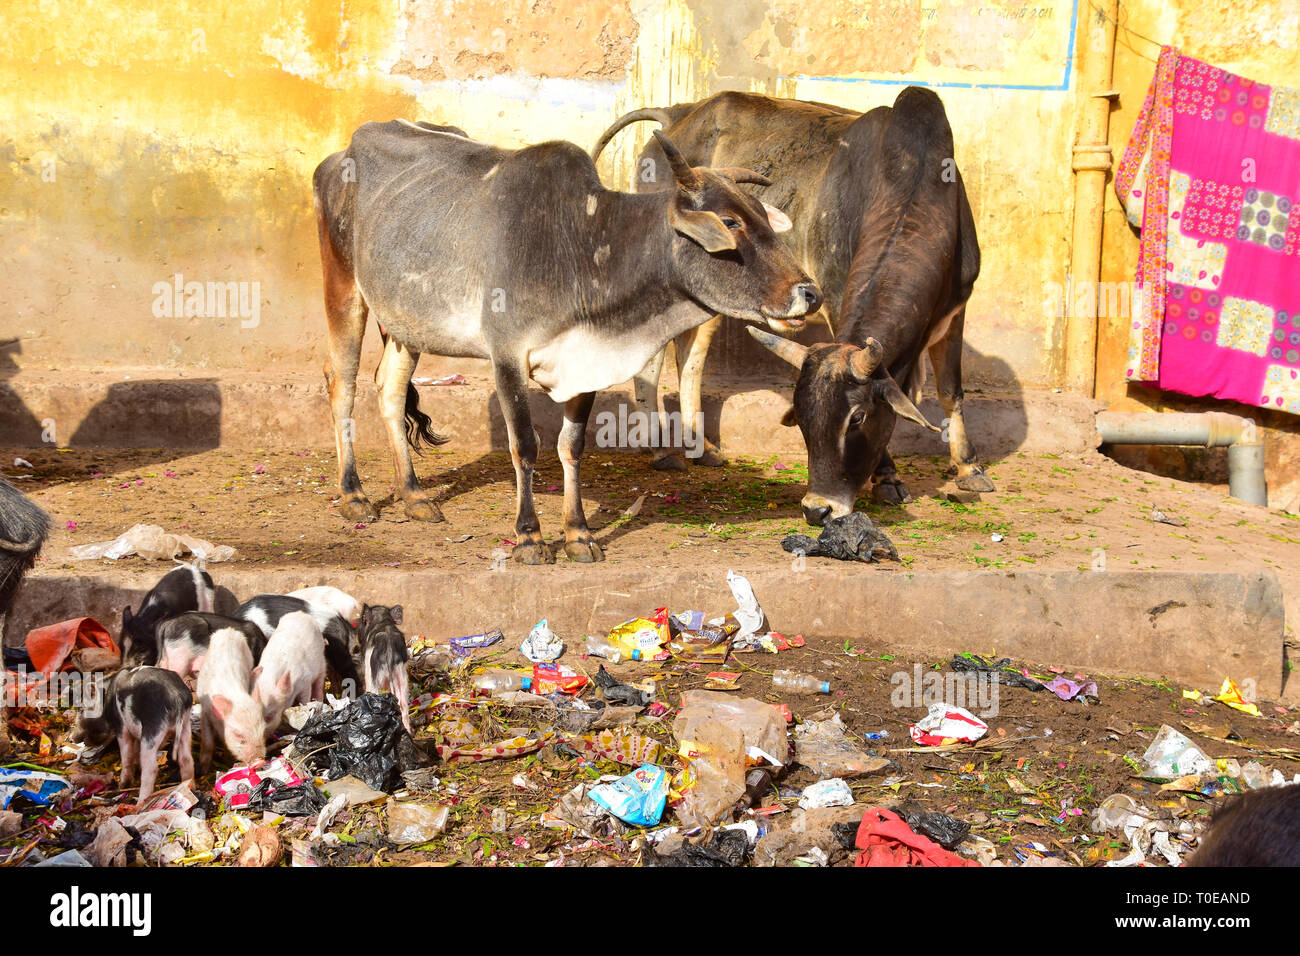 Cows, Piglets, Litter, Filth, Bundi, Rajasthan, India - Stock Image